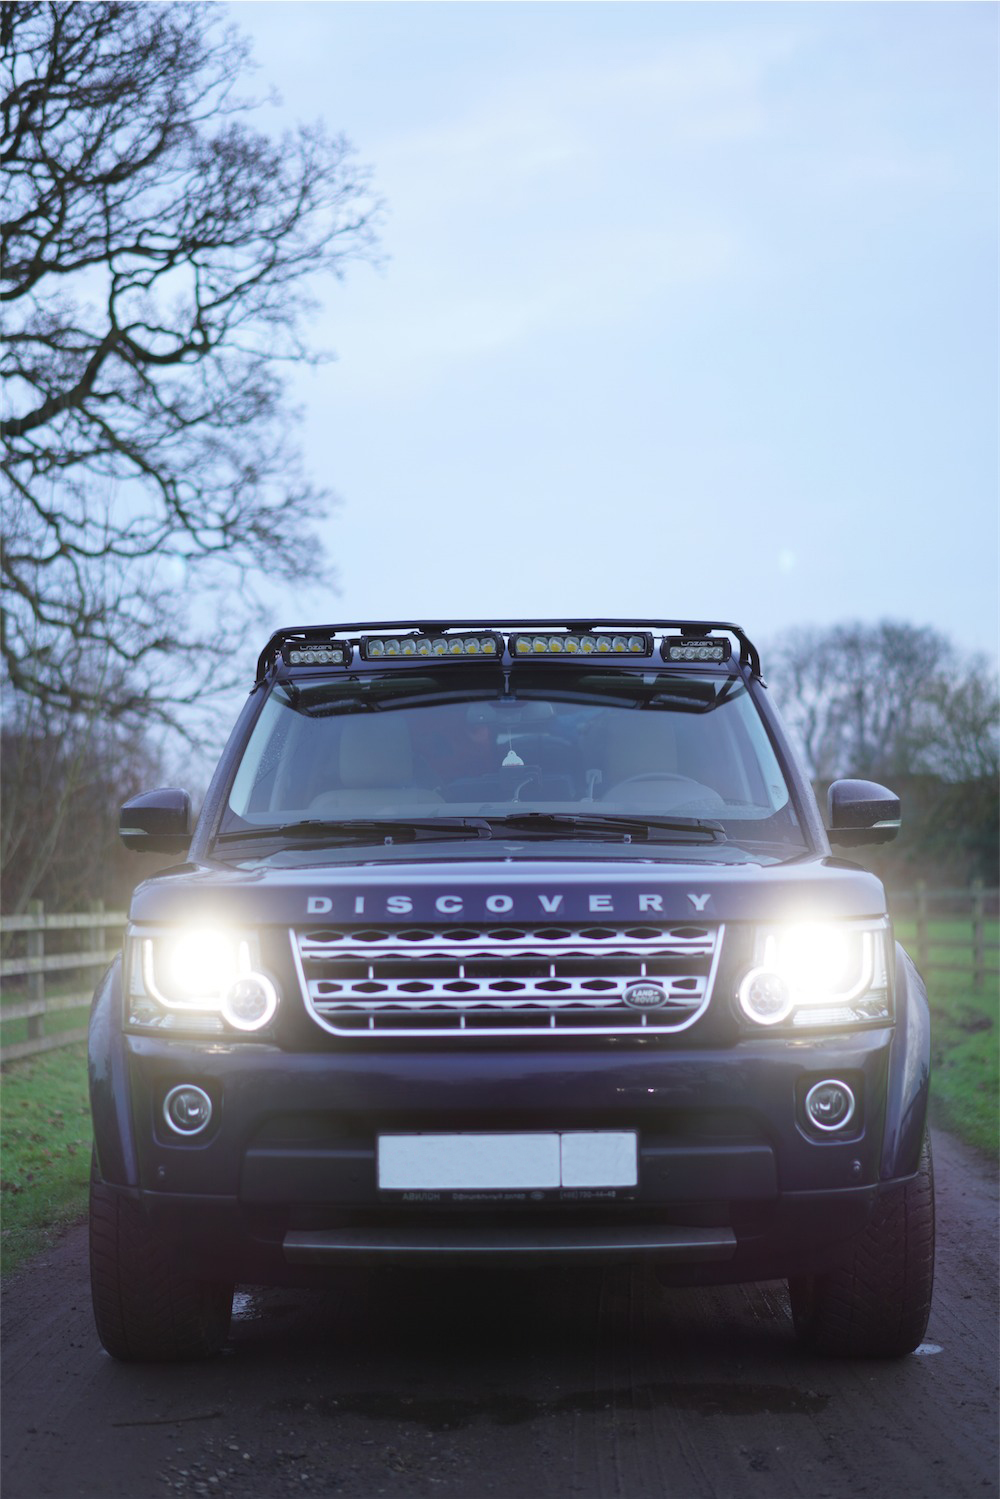 Discovery 3 and 4 light bar mount prospeed discovery light bar mozeypictures Image collections